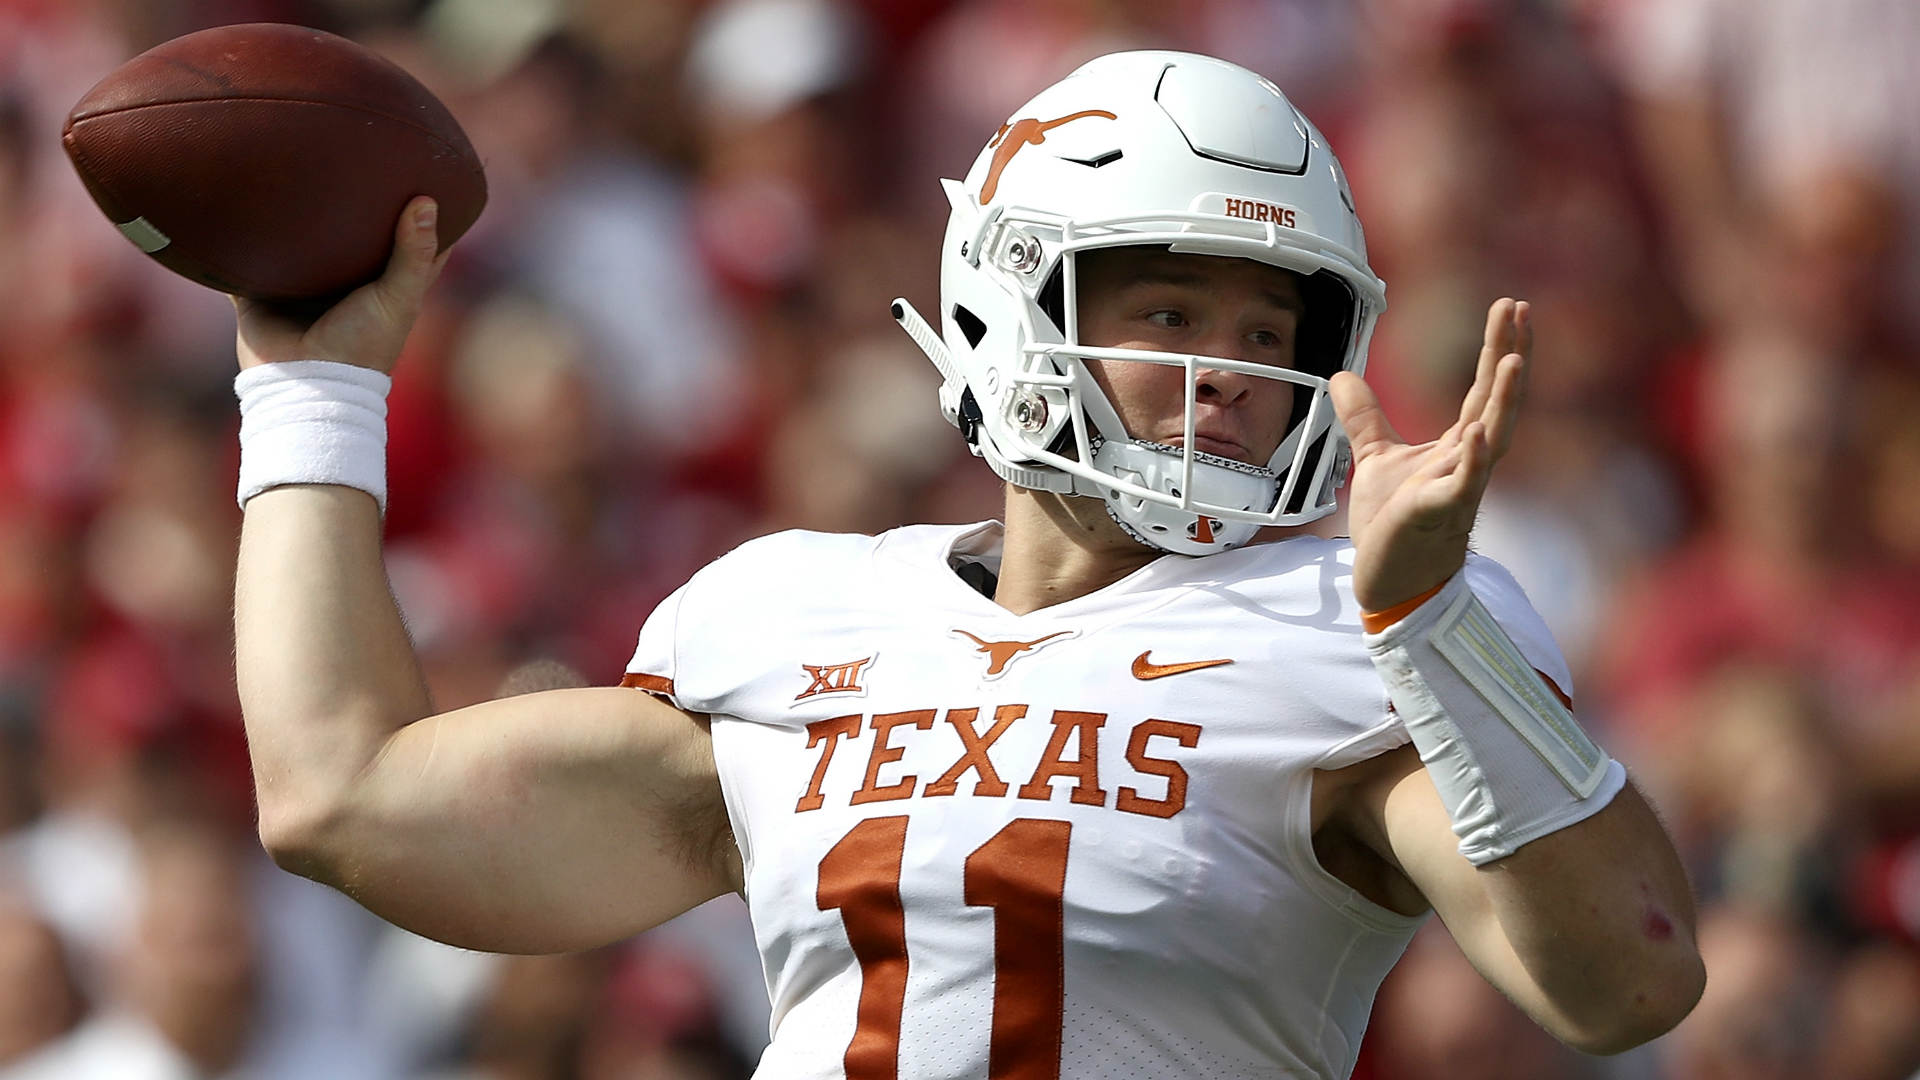 Sam Ehlinger injury update: Texas QB has sprained shoulder, MRI shows